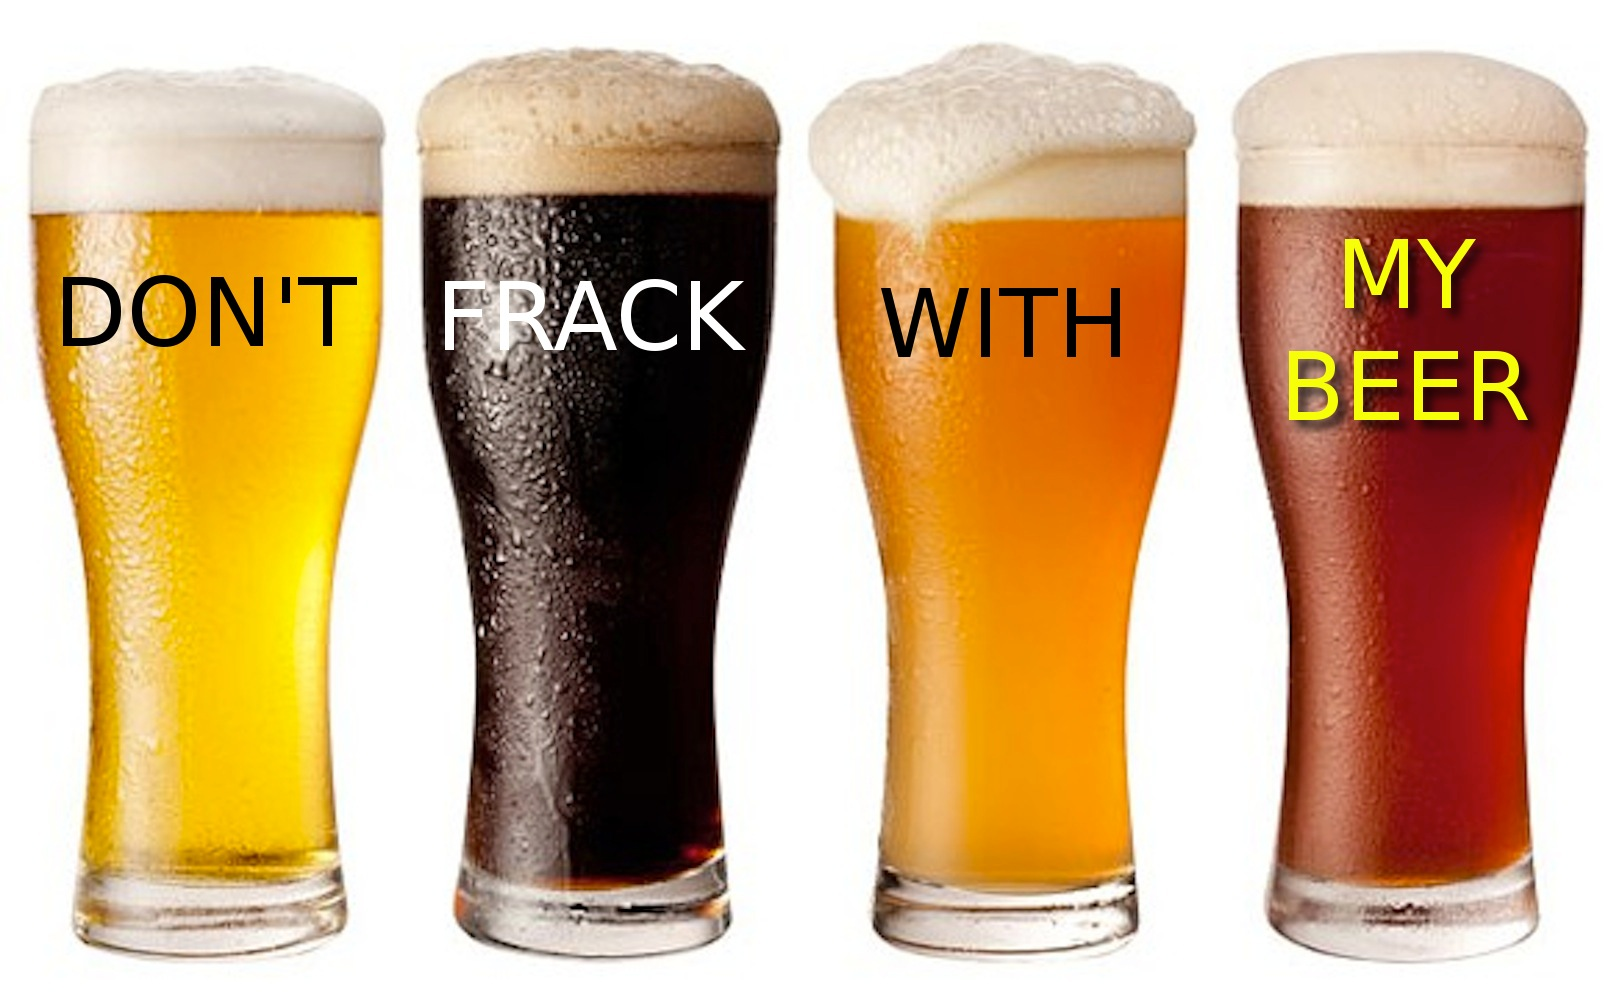 Don't frack with my beer!